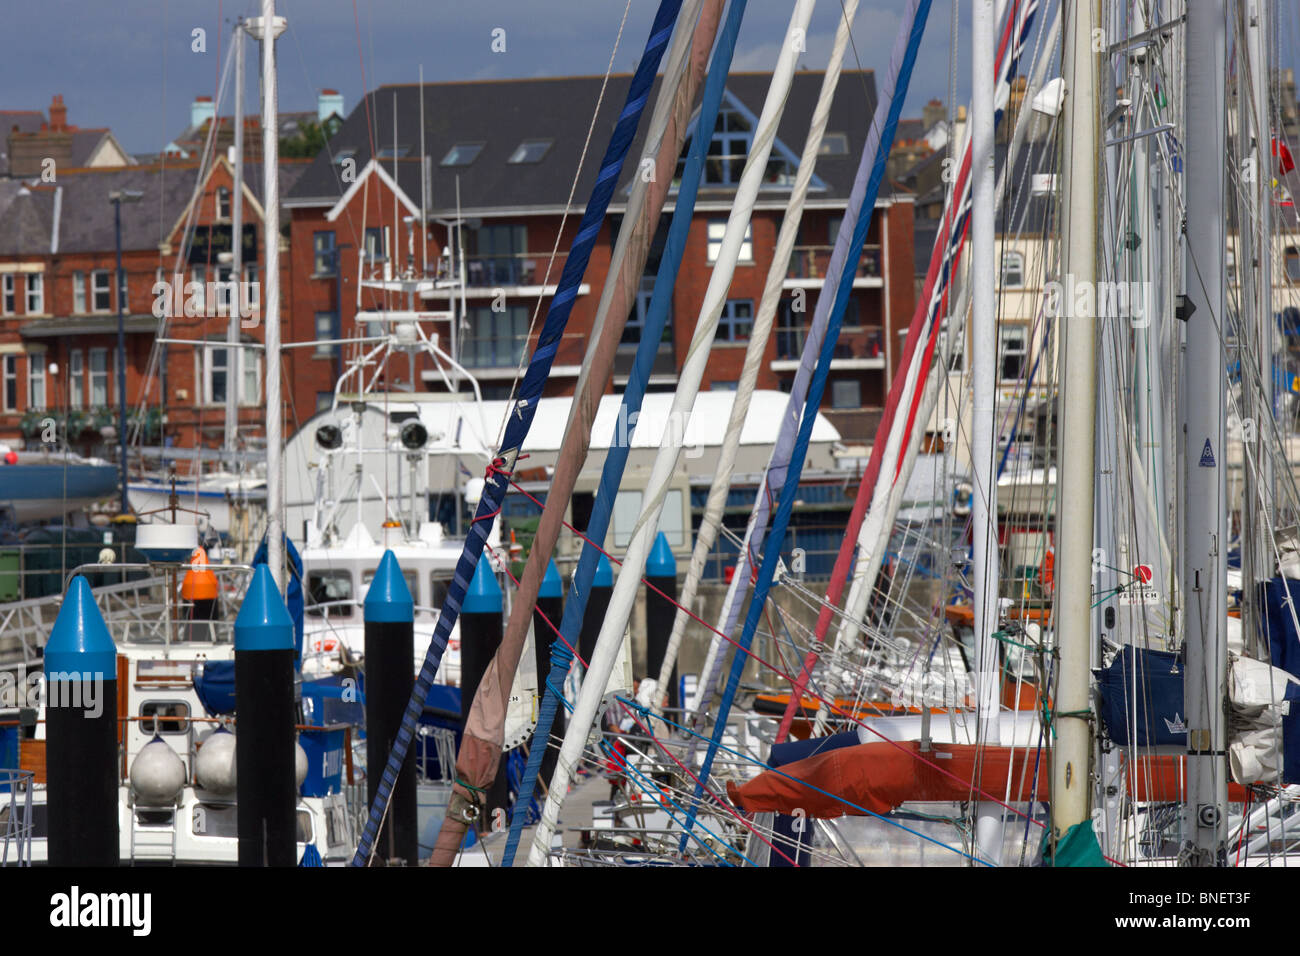 masts and rolled up sails of yachts and boats berthed in bangor marina county down northern ireland uk - Stock Image